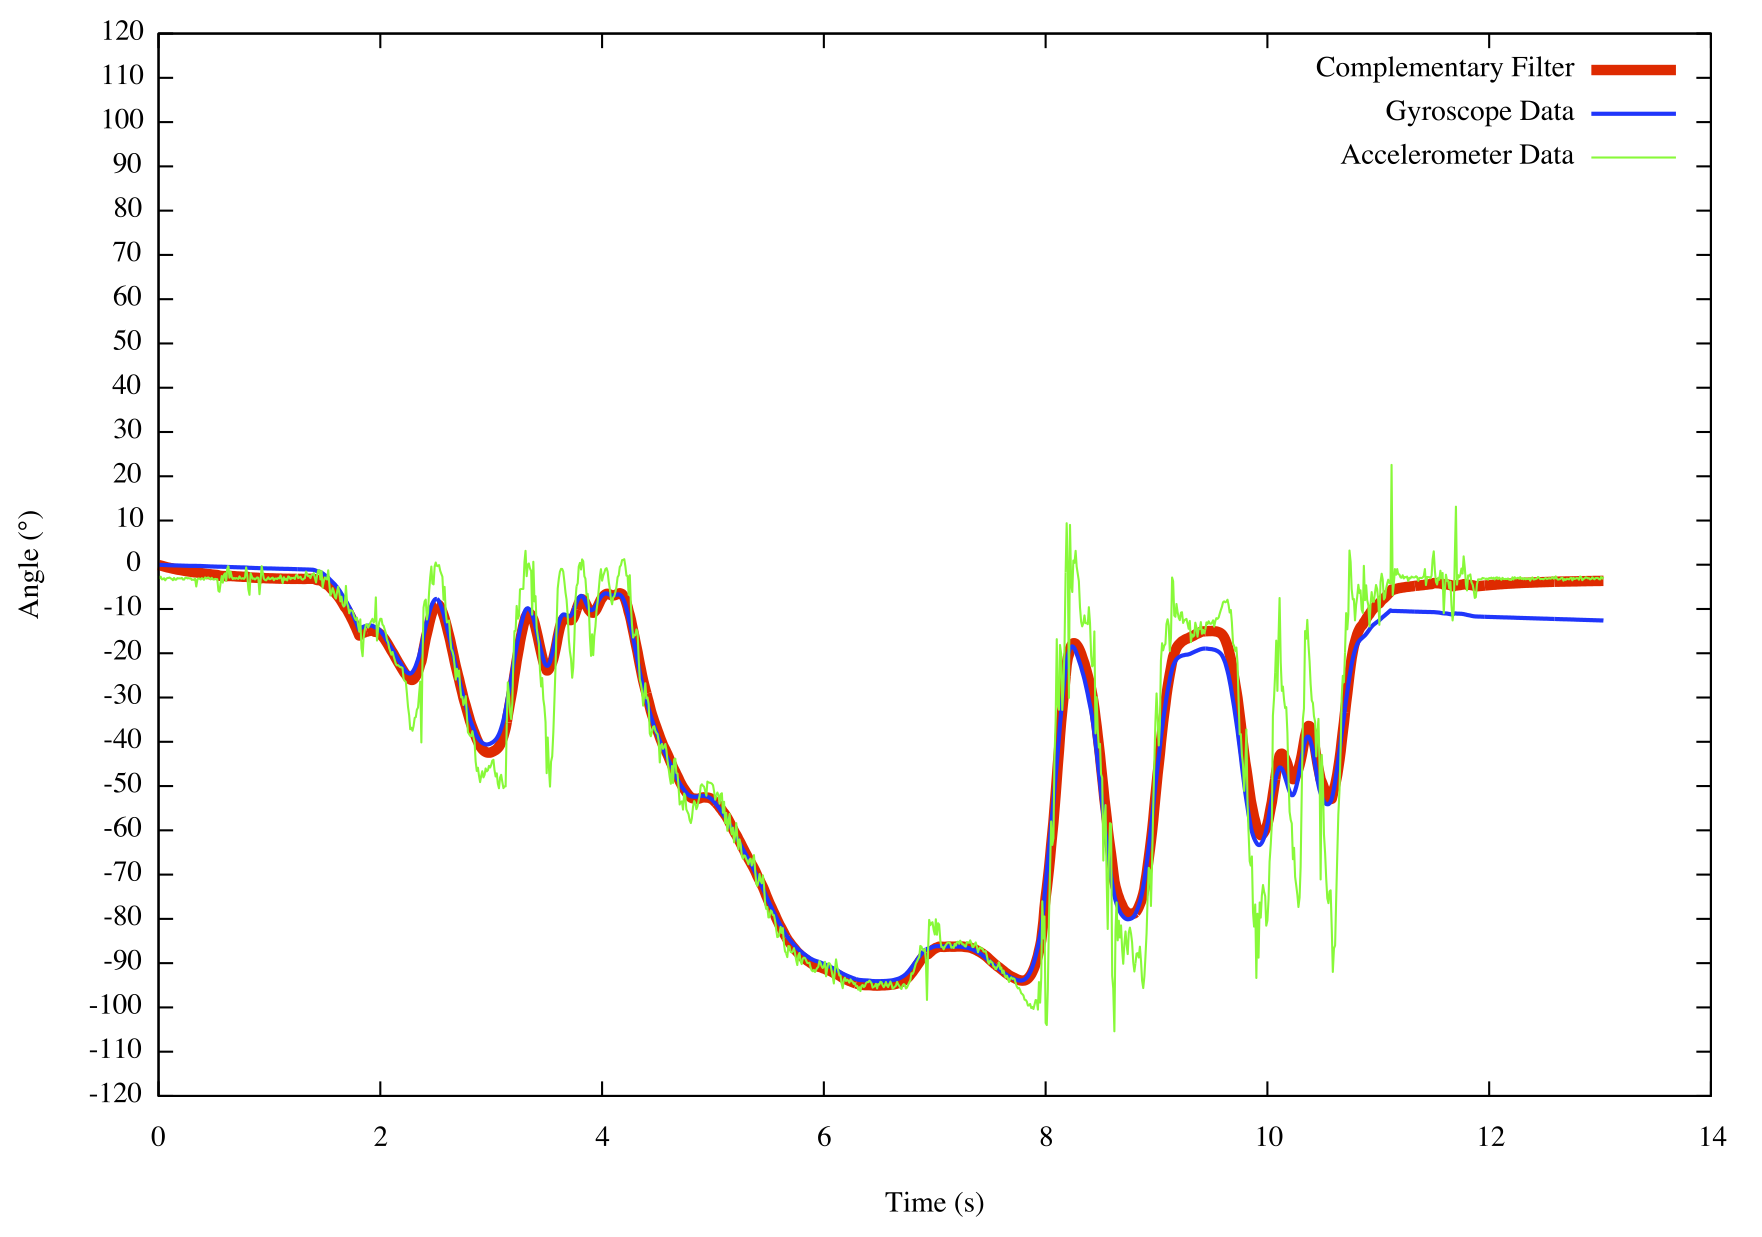 Sensor Fusion Algorithims Mostly Harmless Accelerometer Schematic The Complementary Filter In Action